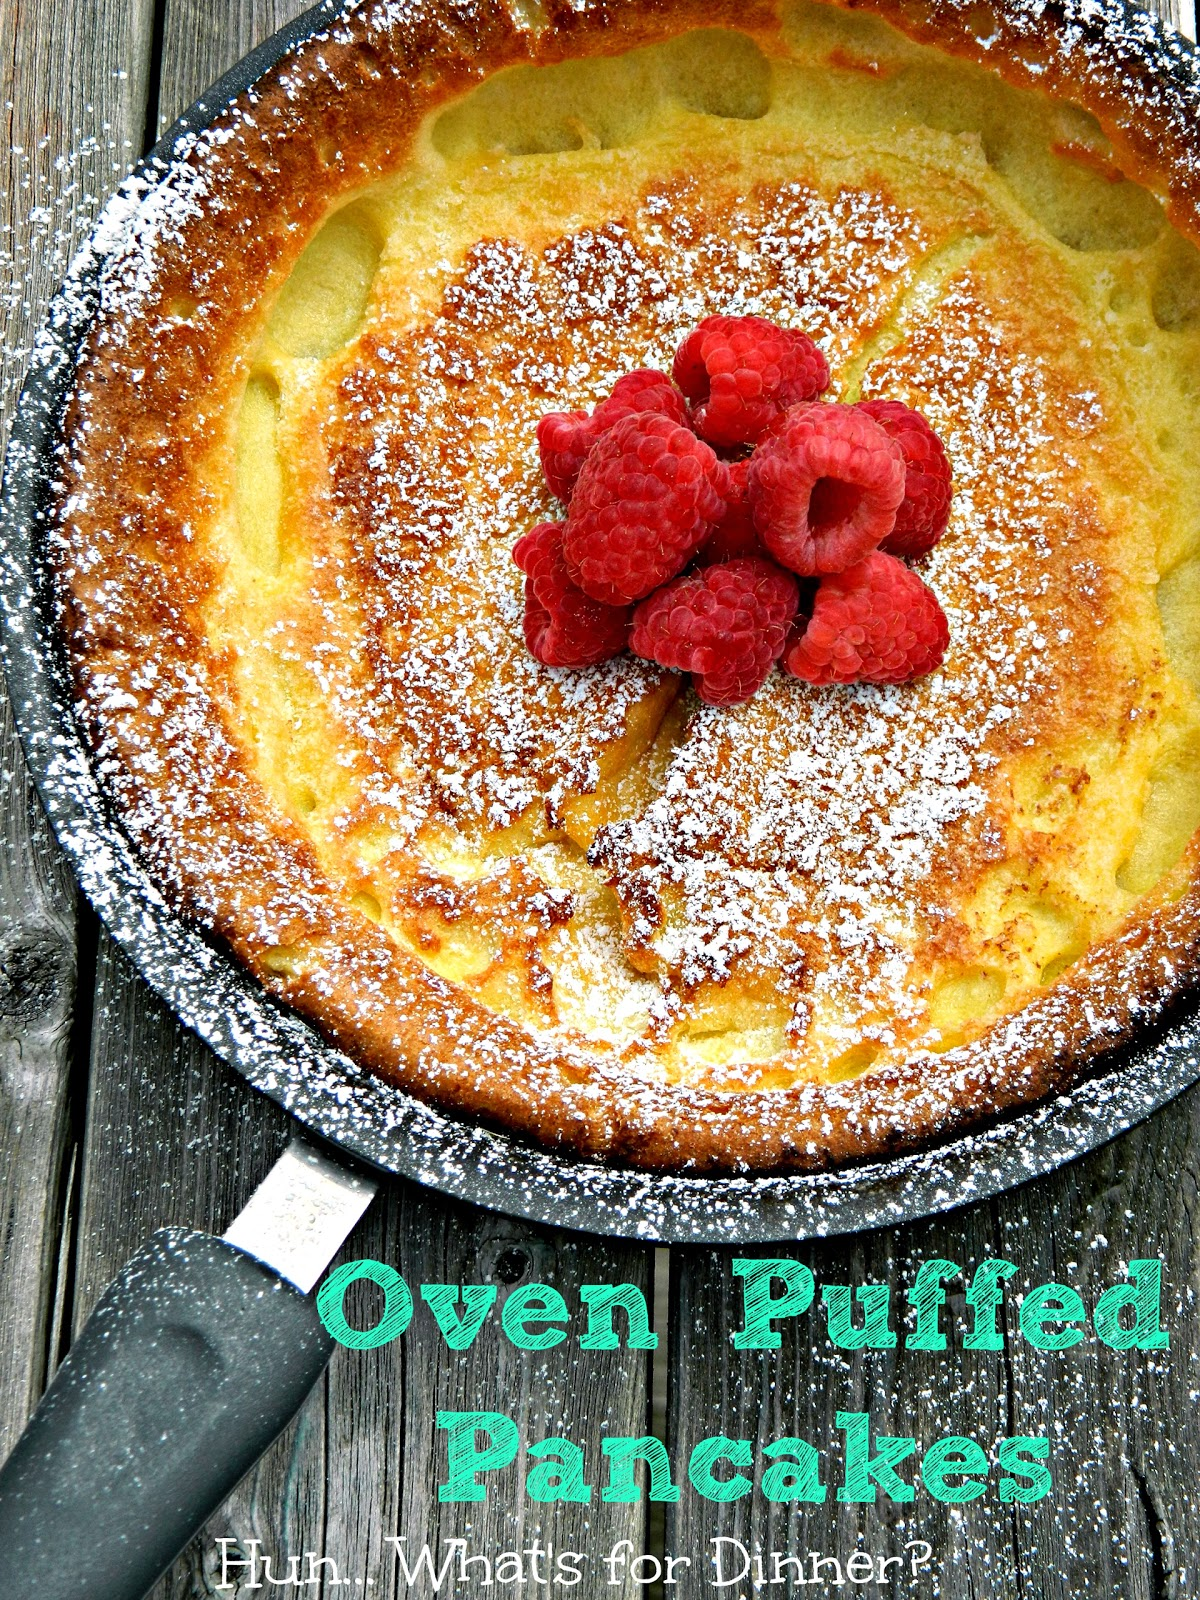 Hun... What's for Dinner? | Oven Puffed Pancakes #GayLeaFoods